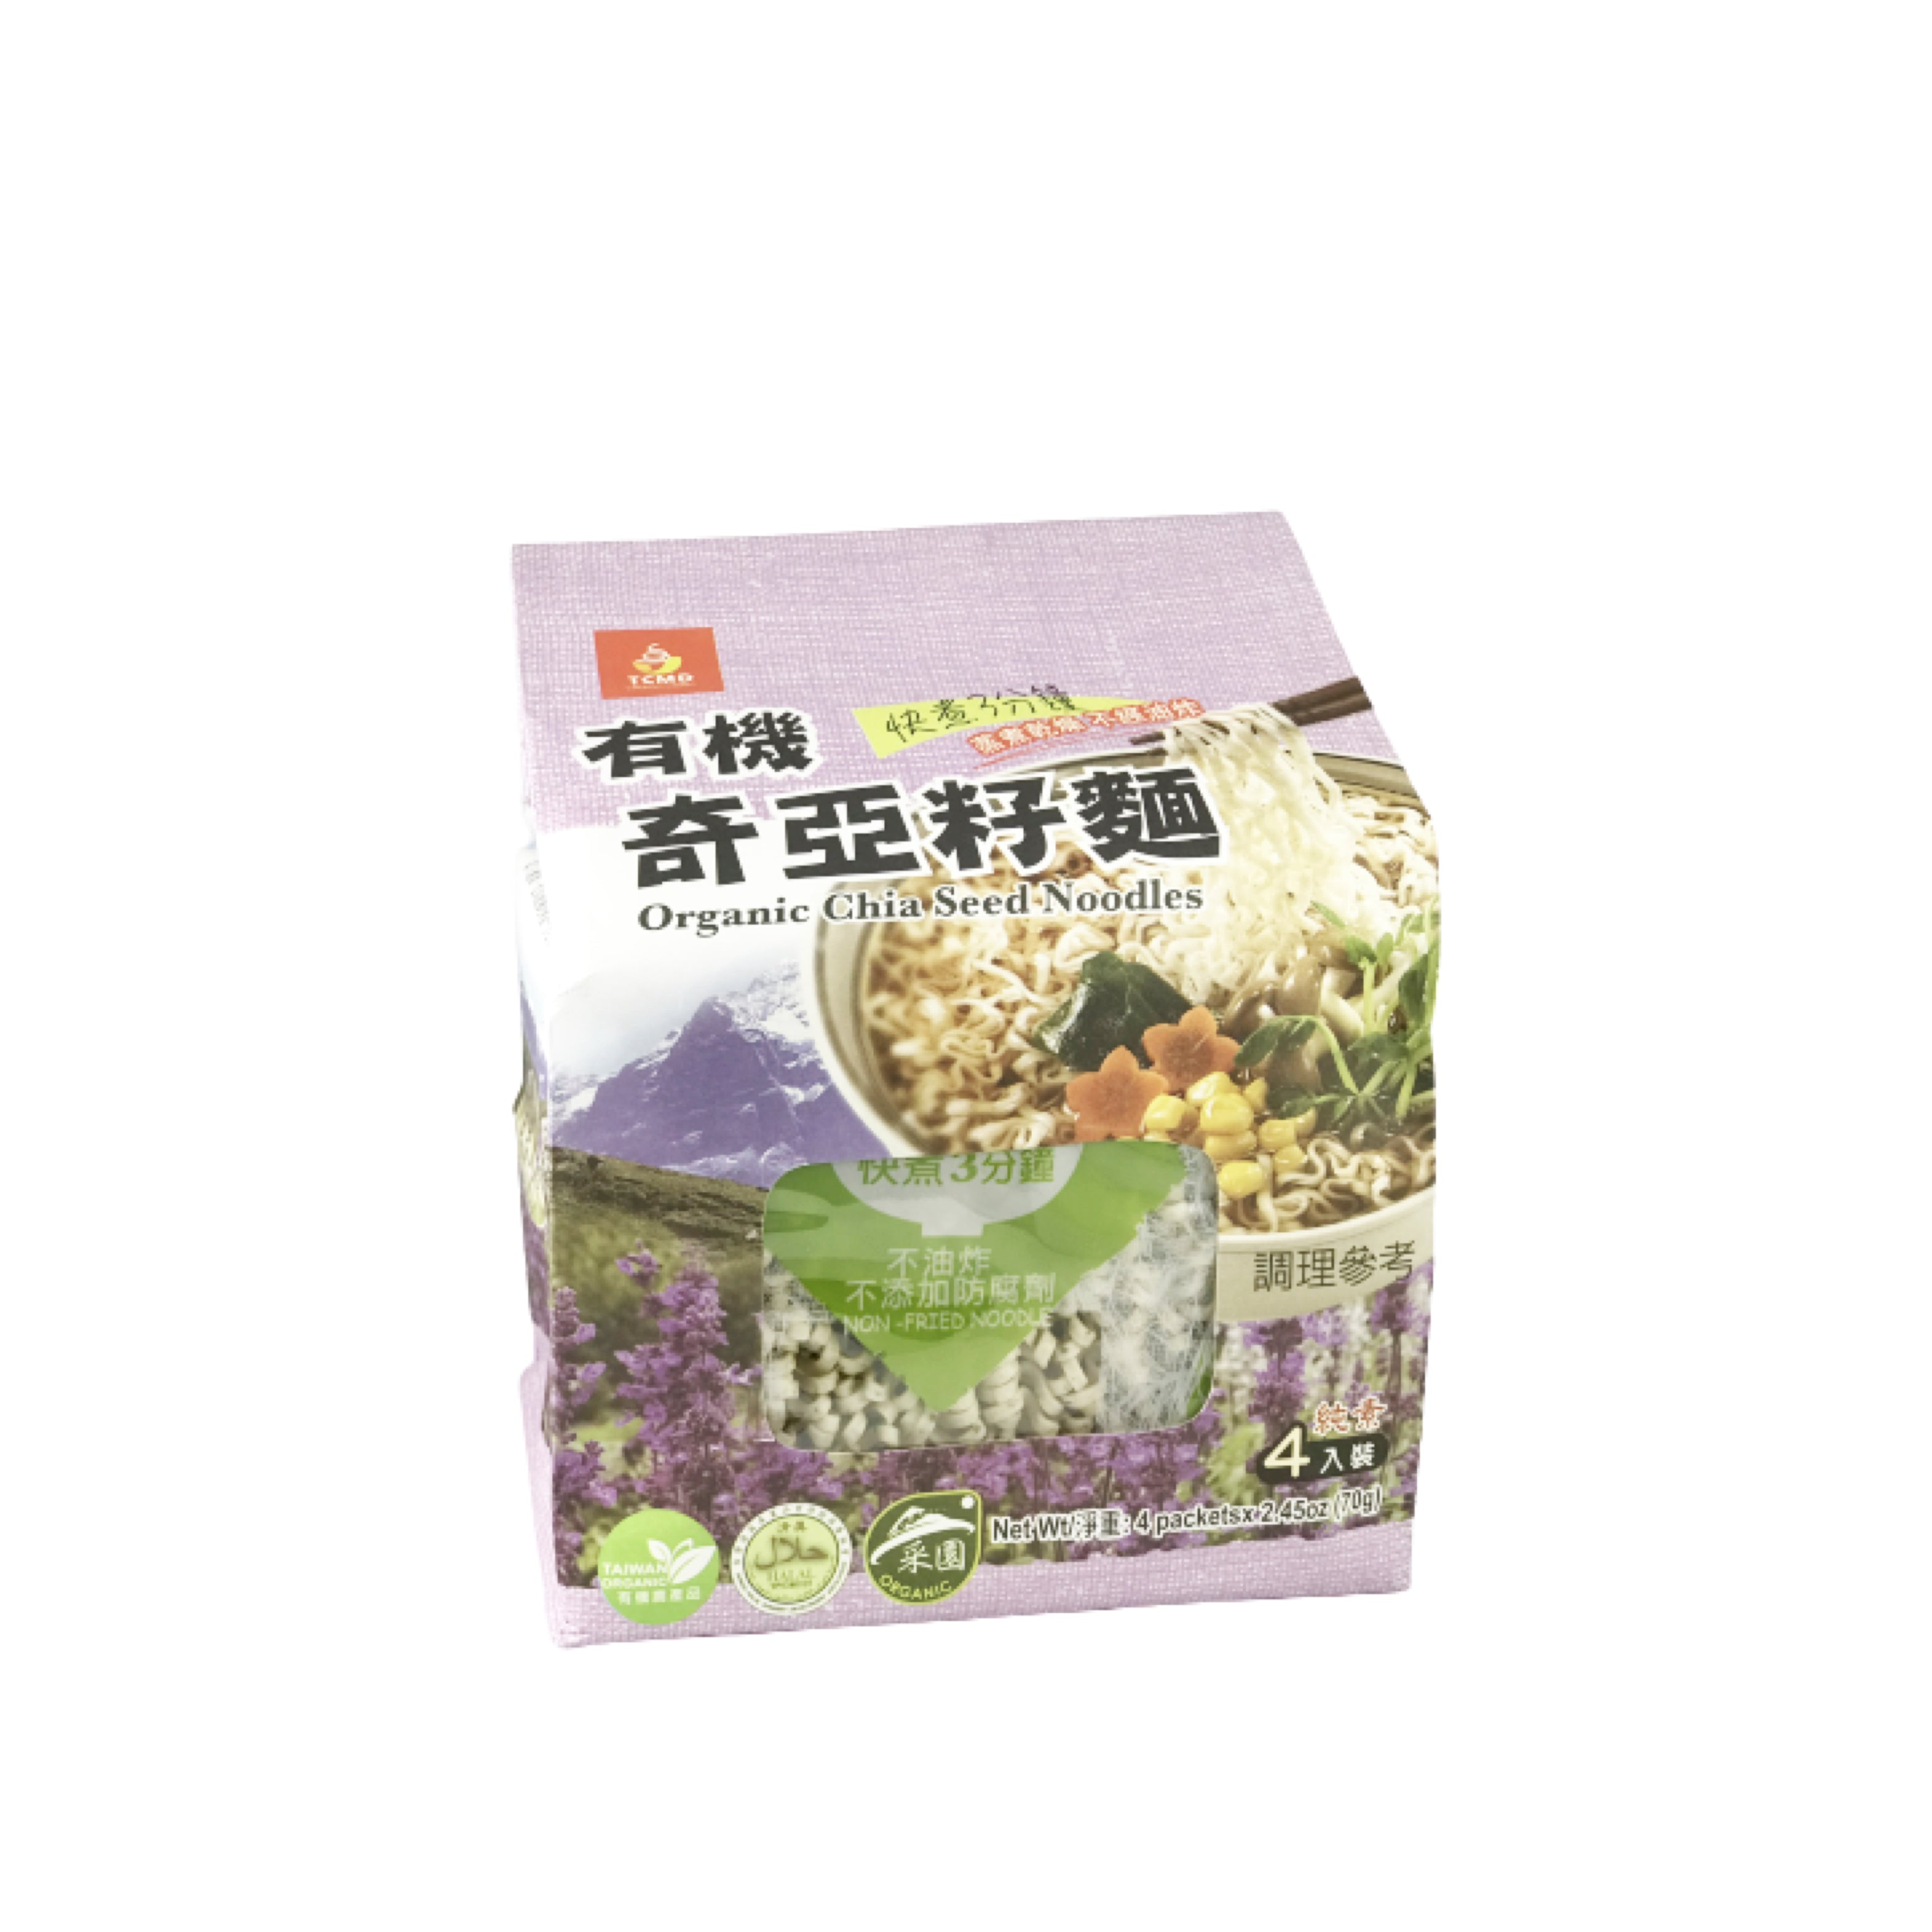 TCMD Organic Chia Seed Noodles